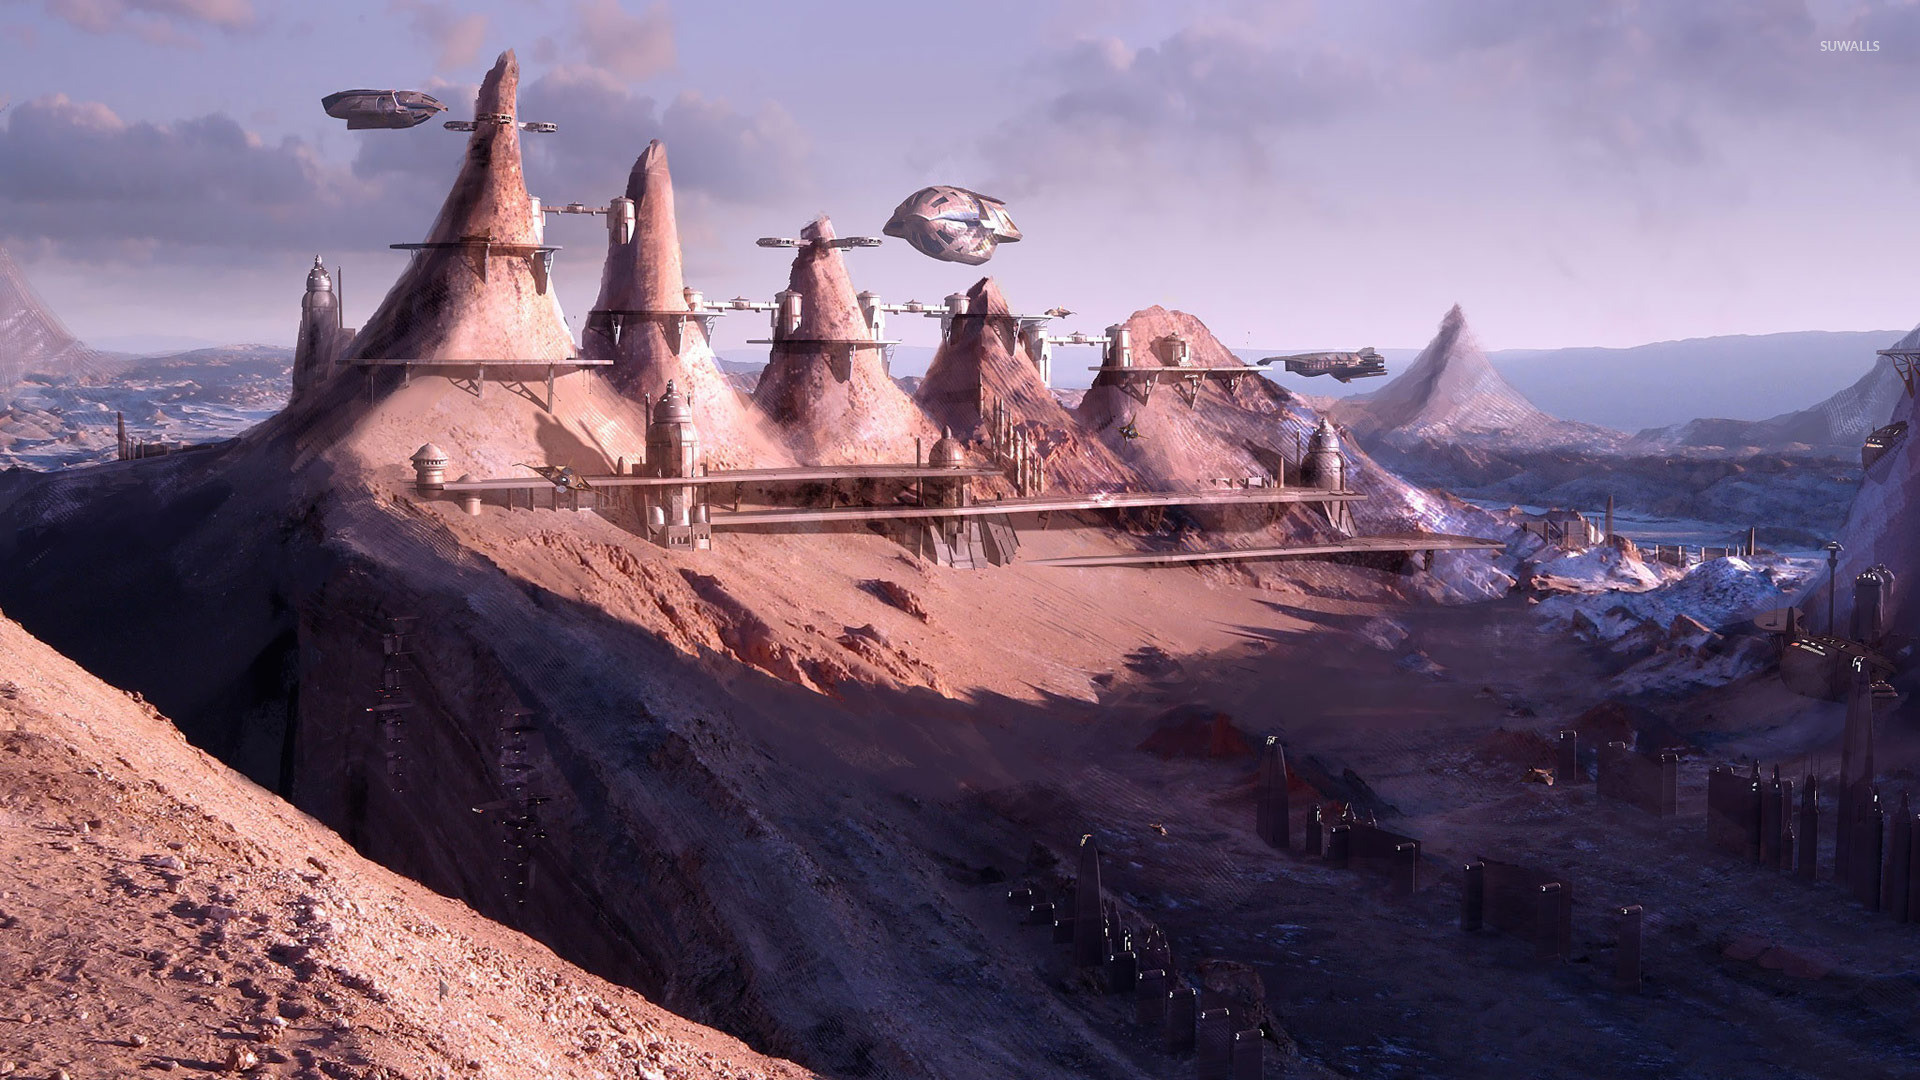 Futuristic city in the mountains wallpaper jpg